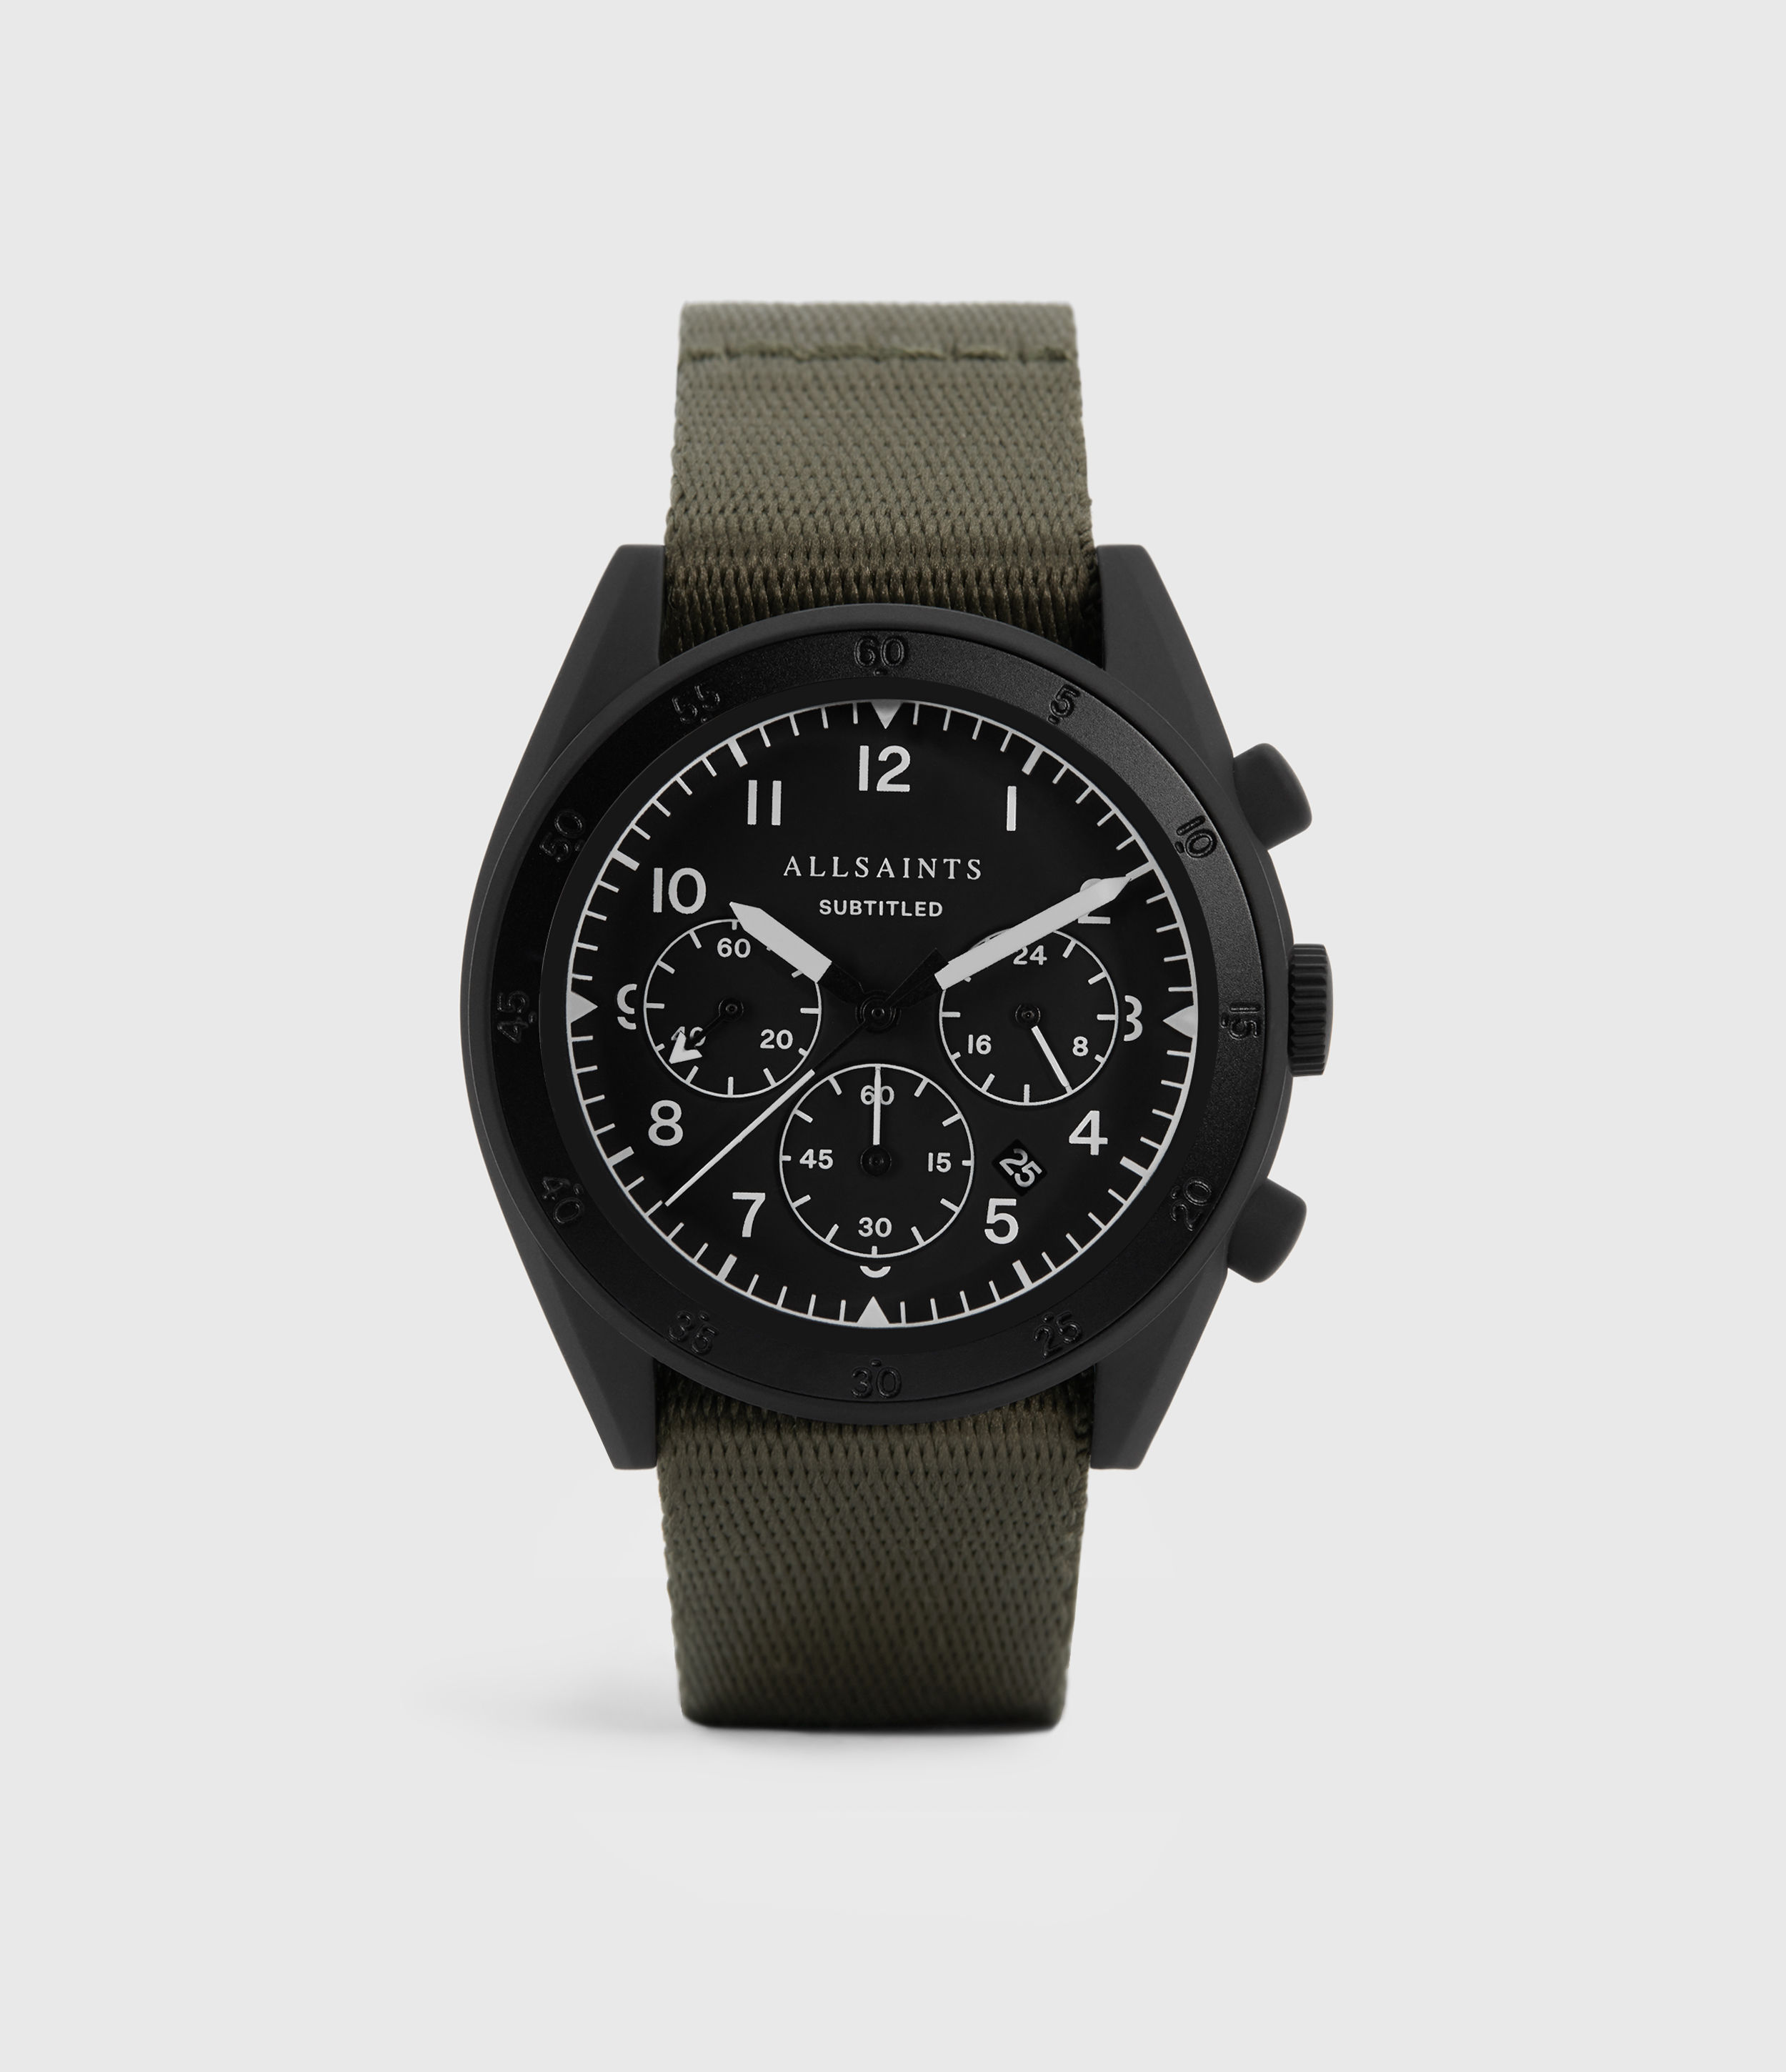 AllSaints Subtitled I Matte Black Stainless Steel and Military Green Nylon Watch